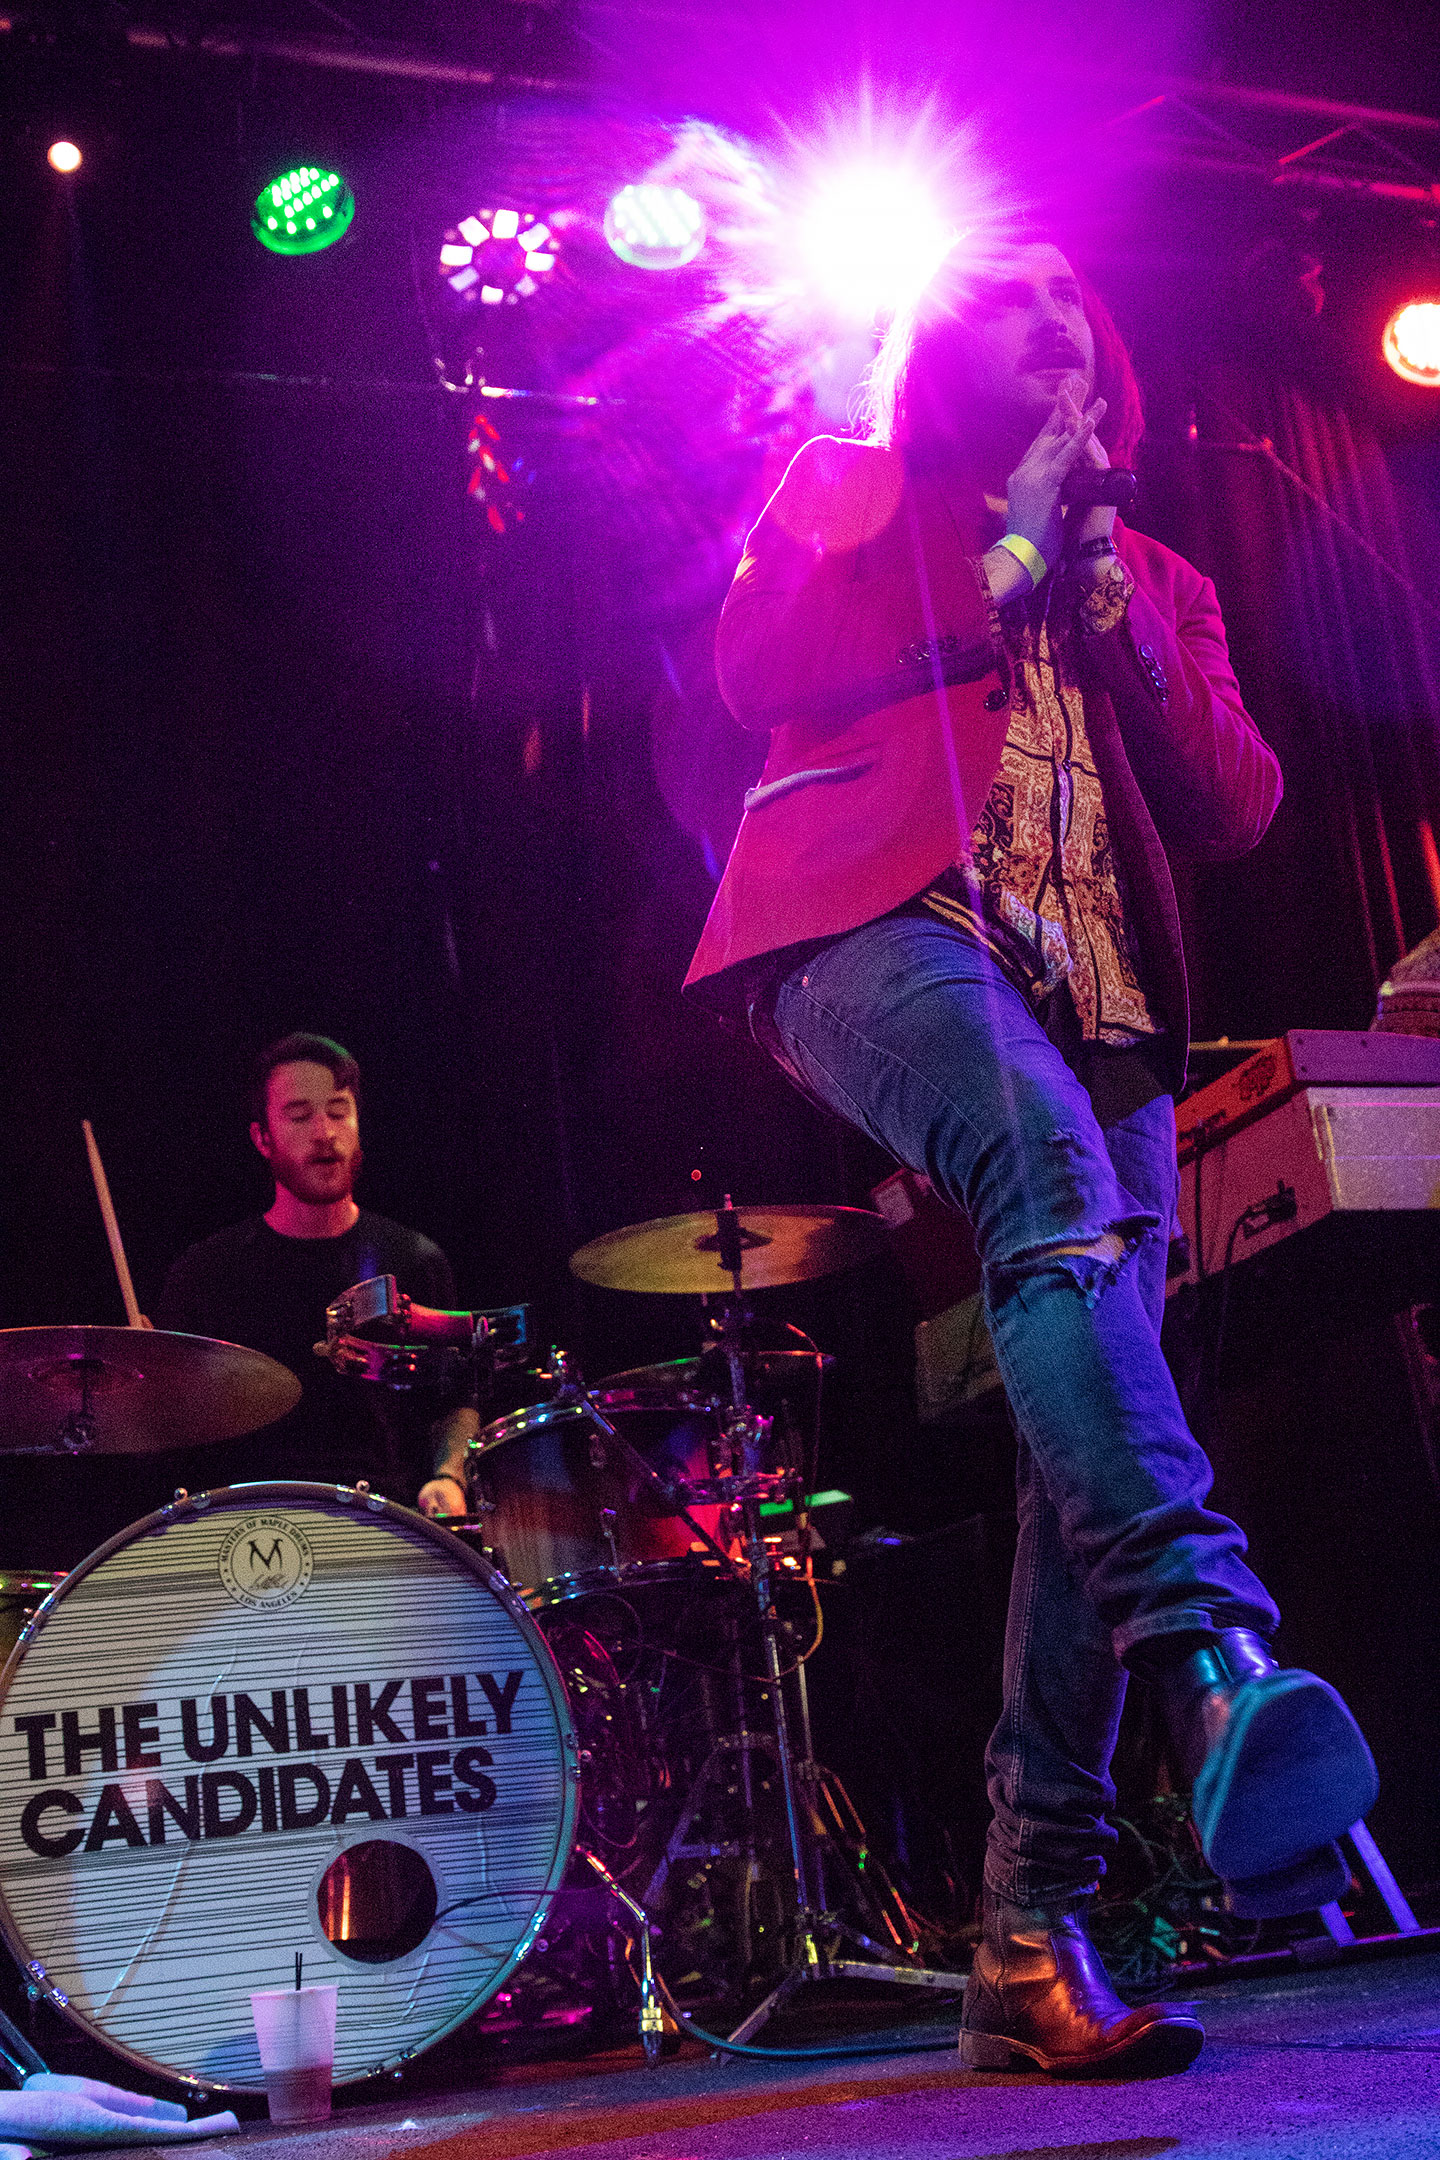 The Unlikely Candidates at The Roxy - Denver Concert Photos